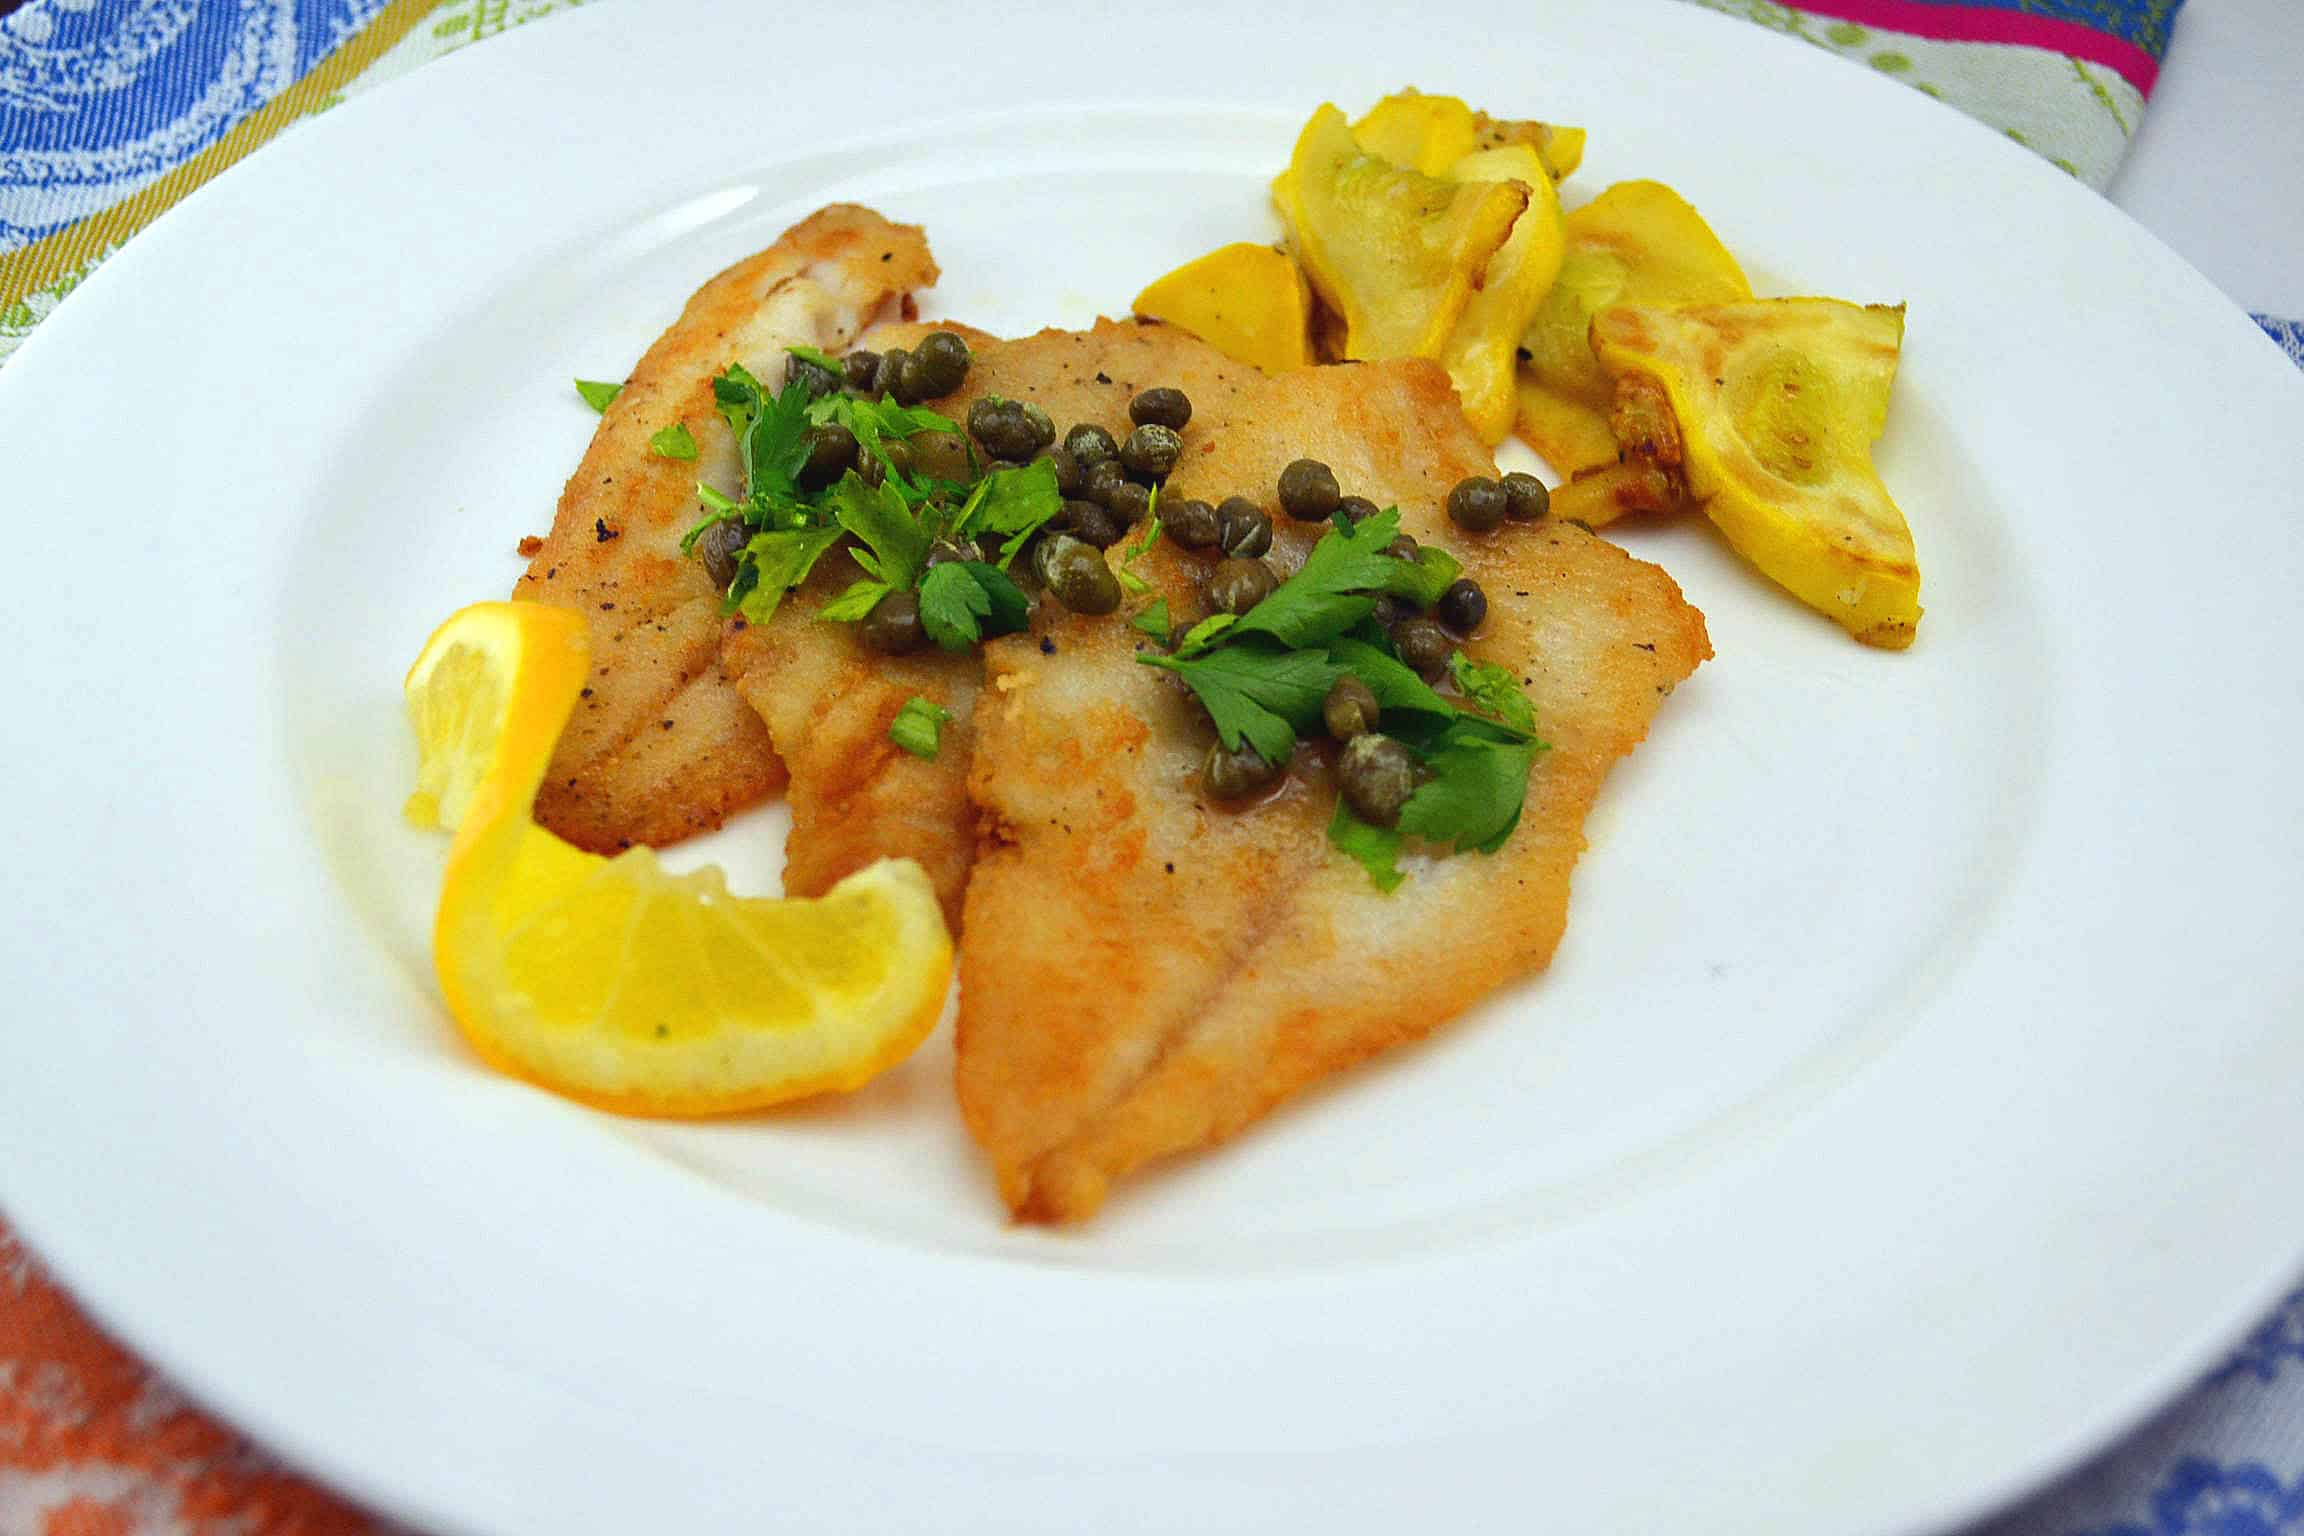 Julia Child's Fillets of Sole Meuniere | The Little Ferraro Kitchen